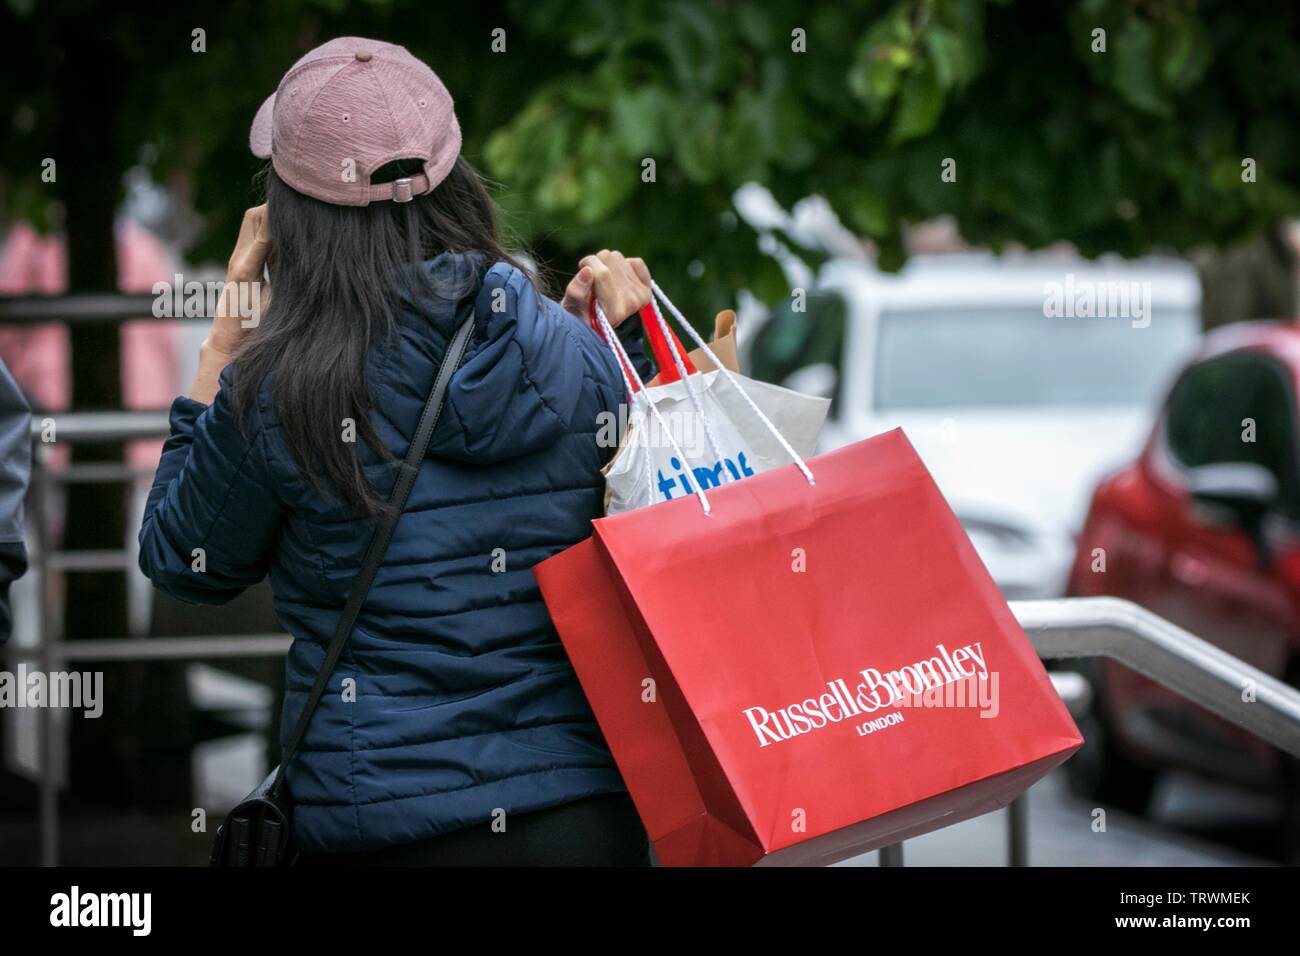 A woman carries a Russell and Bromley shoe store bag over her shoulder in Manchester city centre, UK - Stock Image